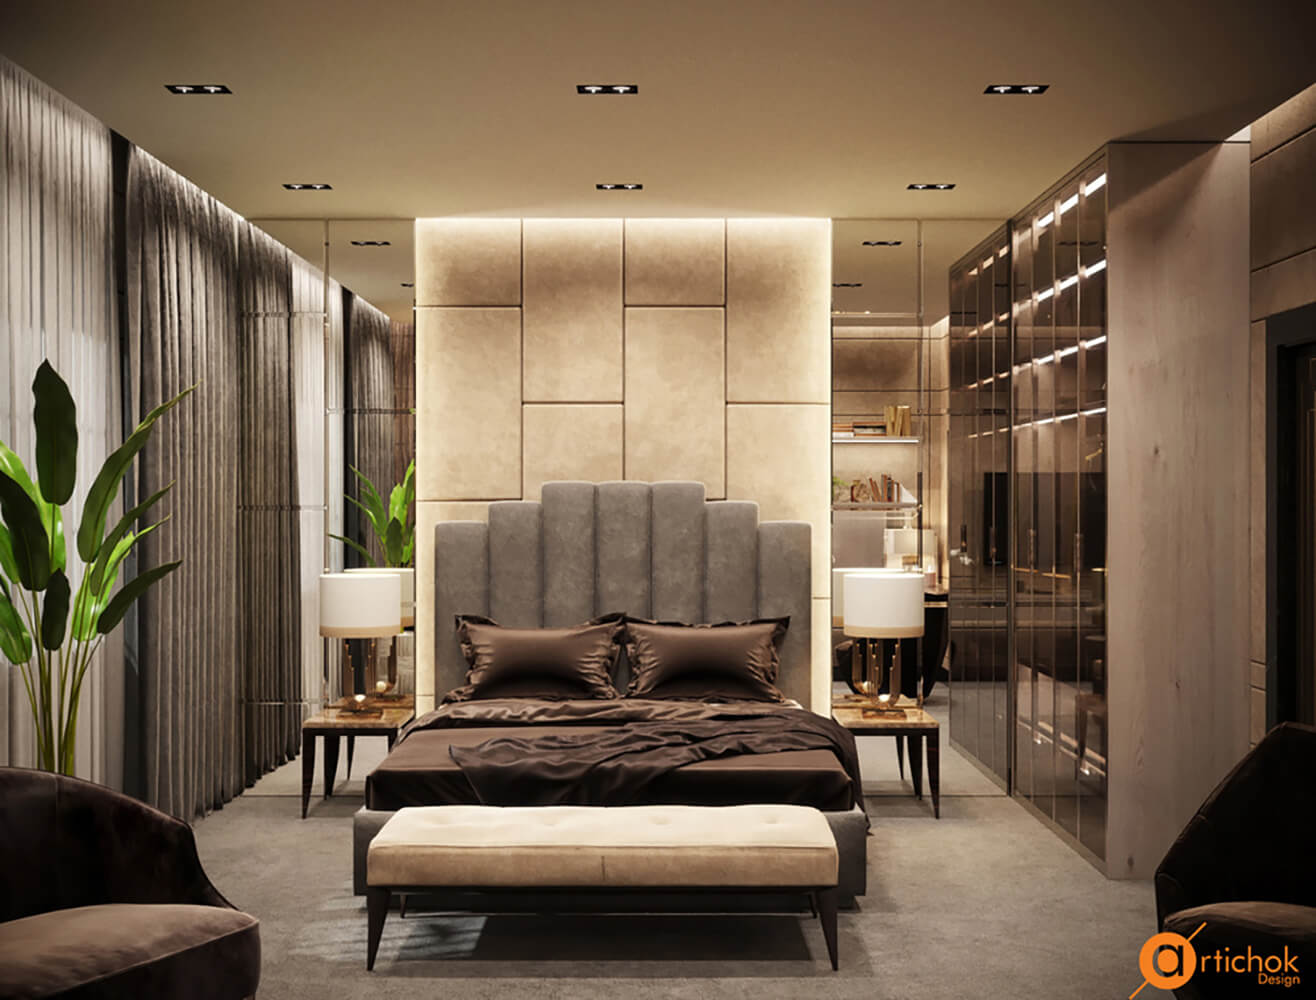 1000x800-luxury-guest-bedroom-1.3a9..pagespeed.ce.oxs6cqljap